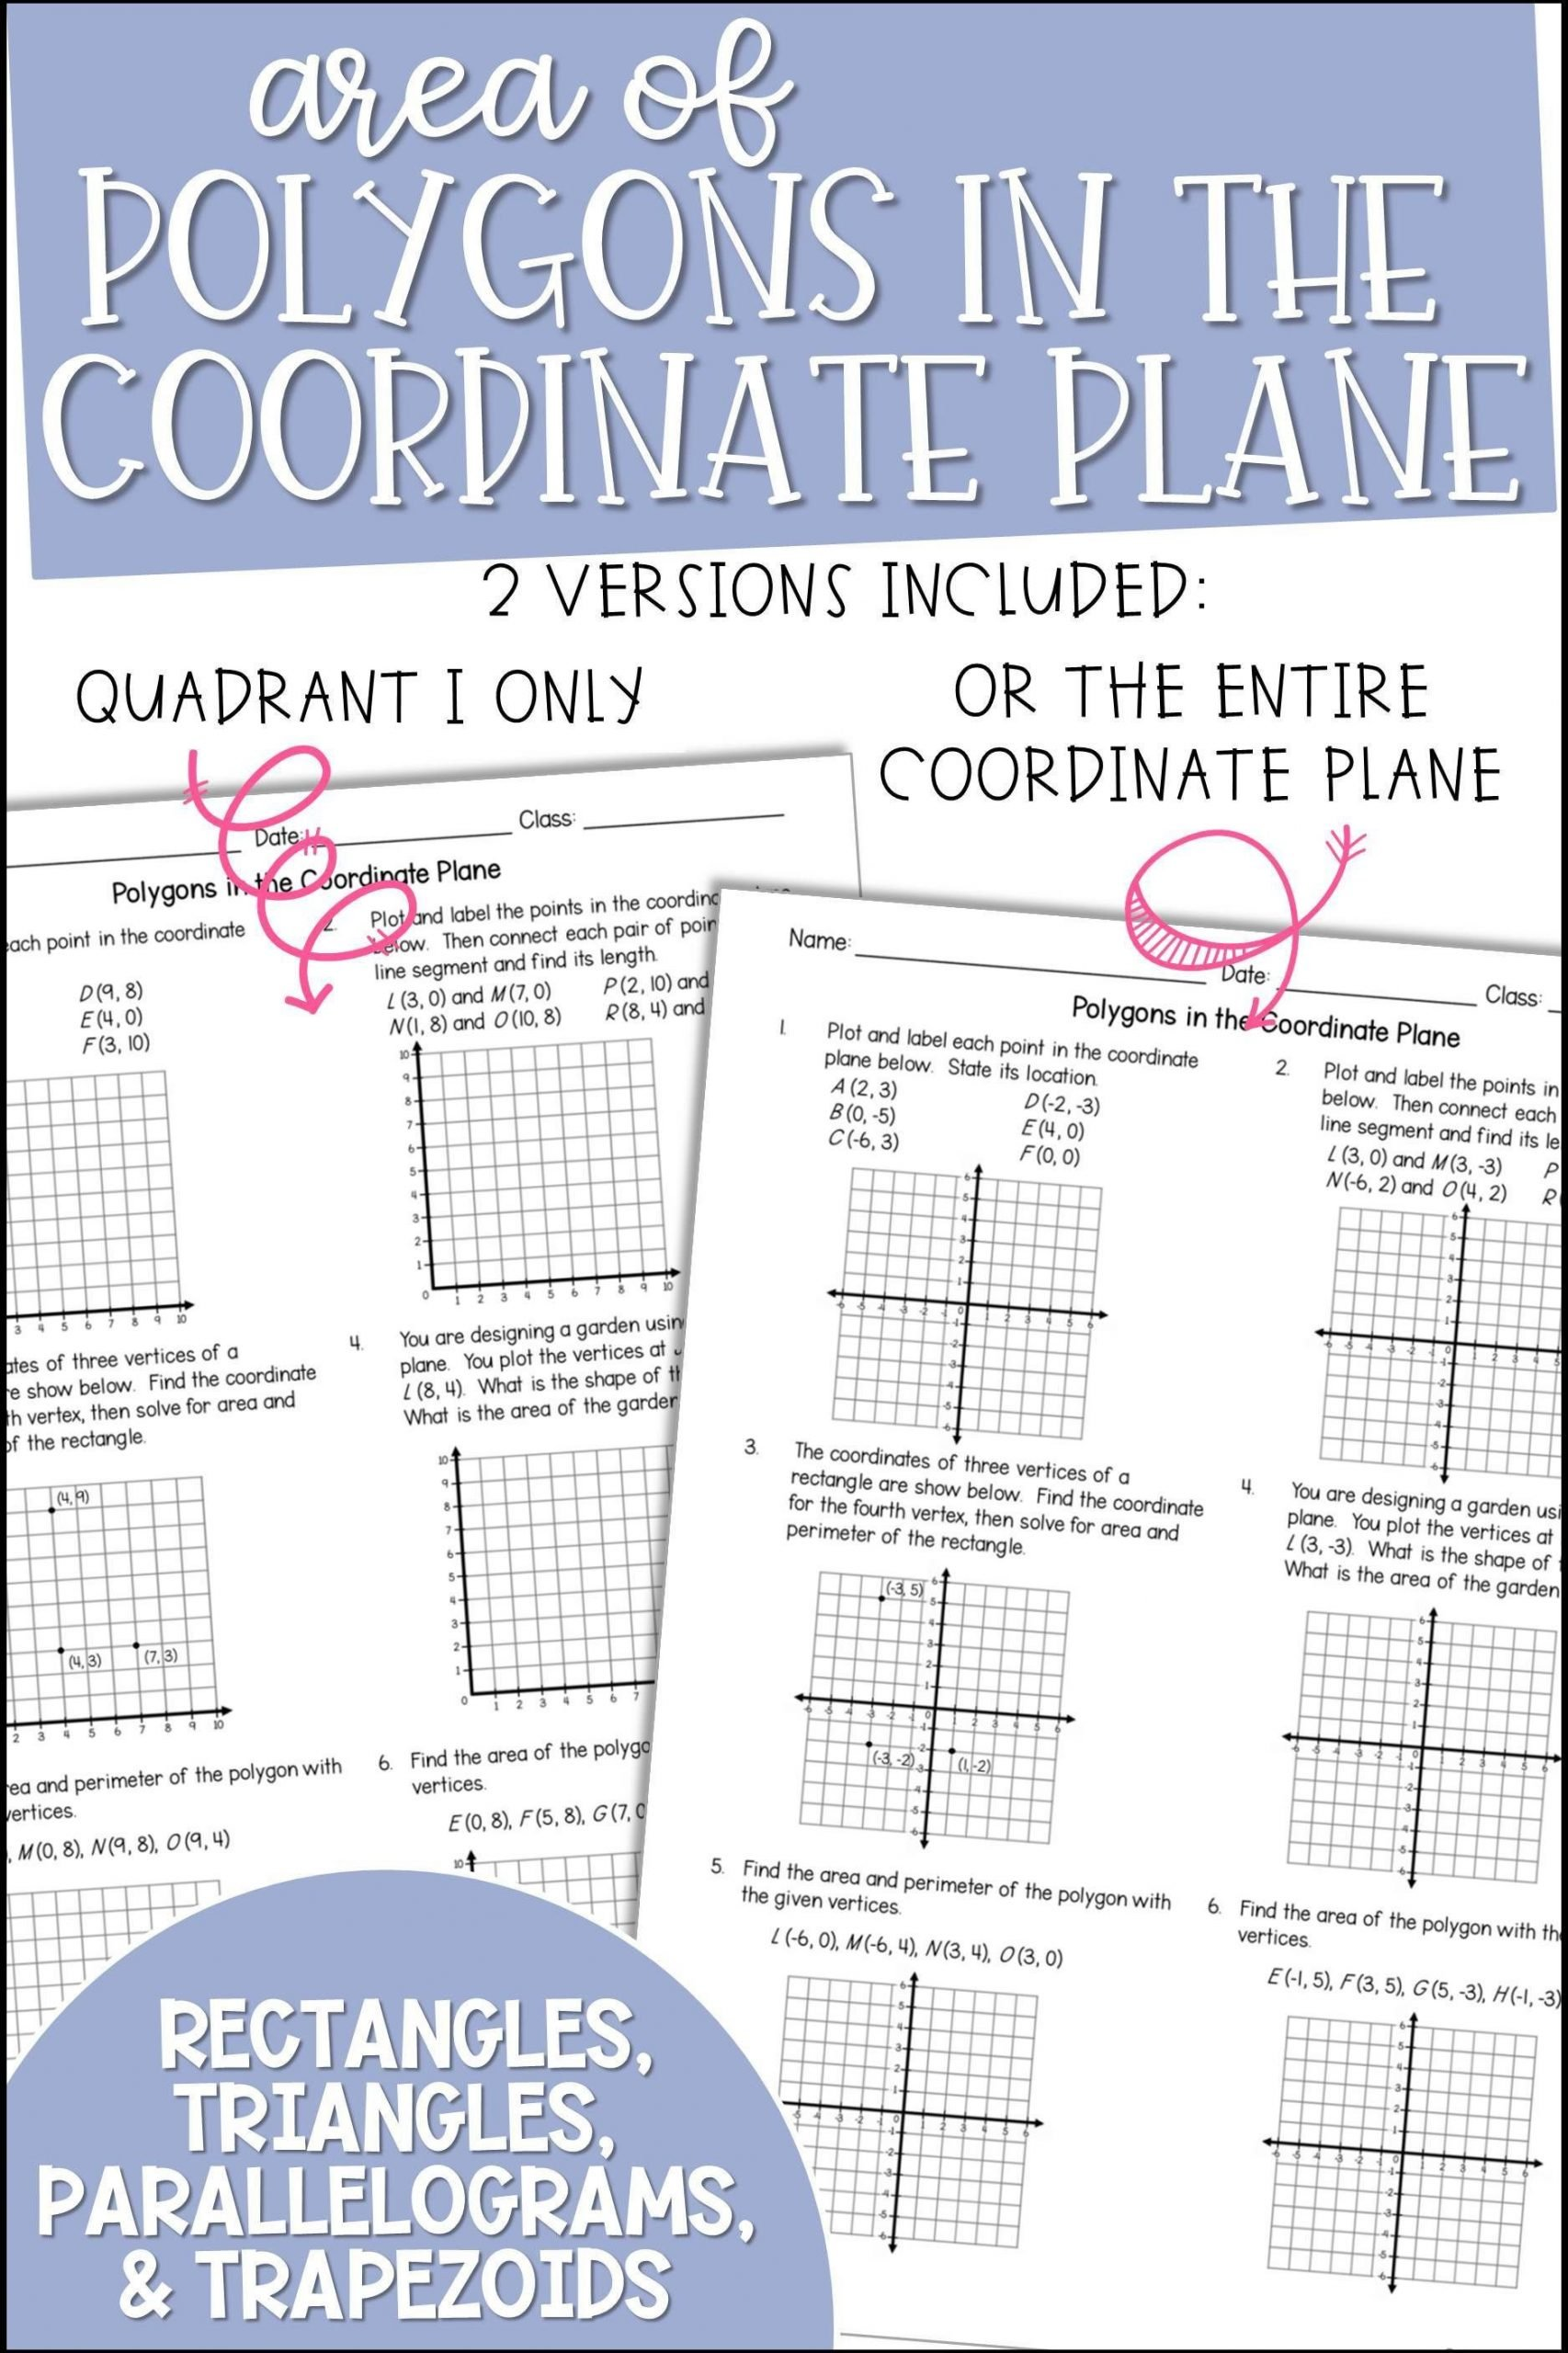 Fun Coordinate Plane Worksheets area Of Polygons In the Coordinate Plane